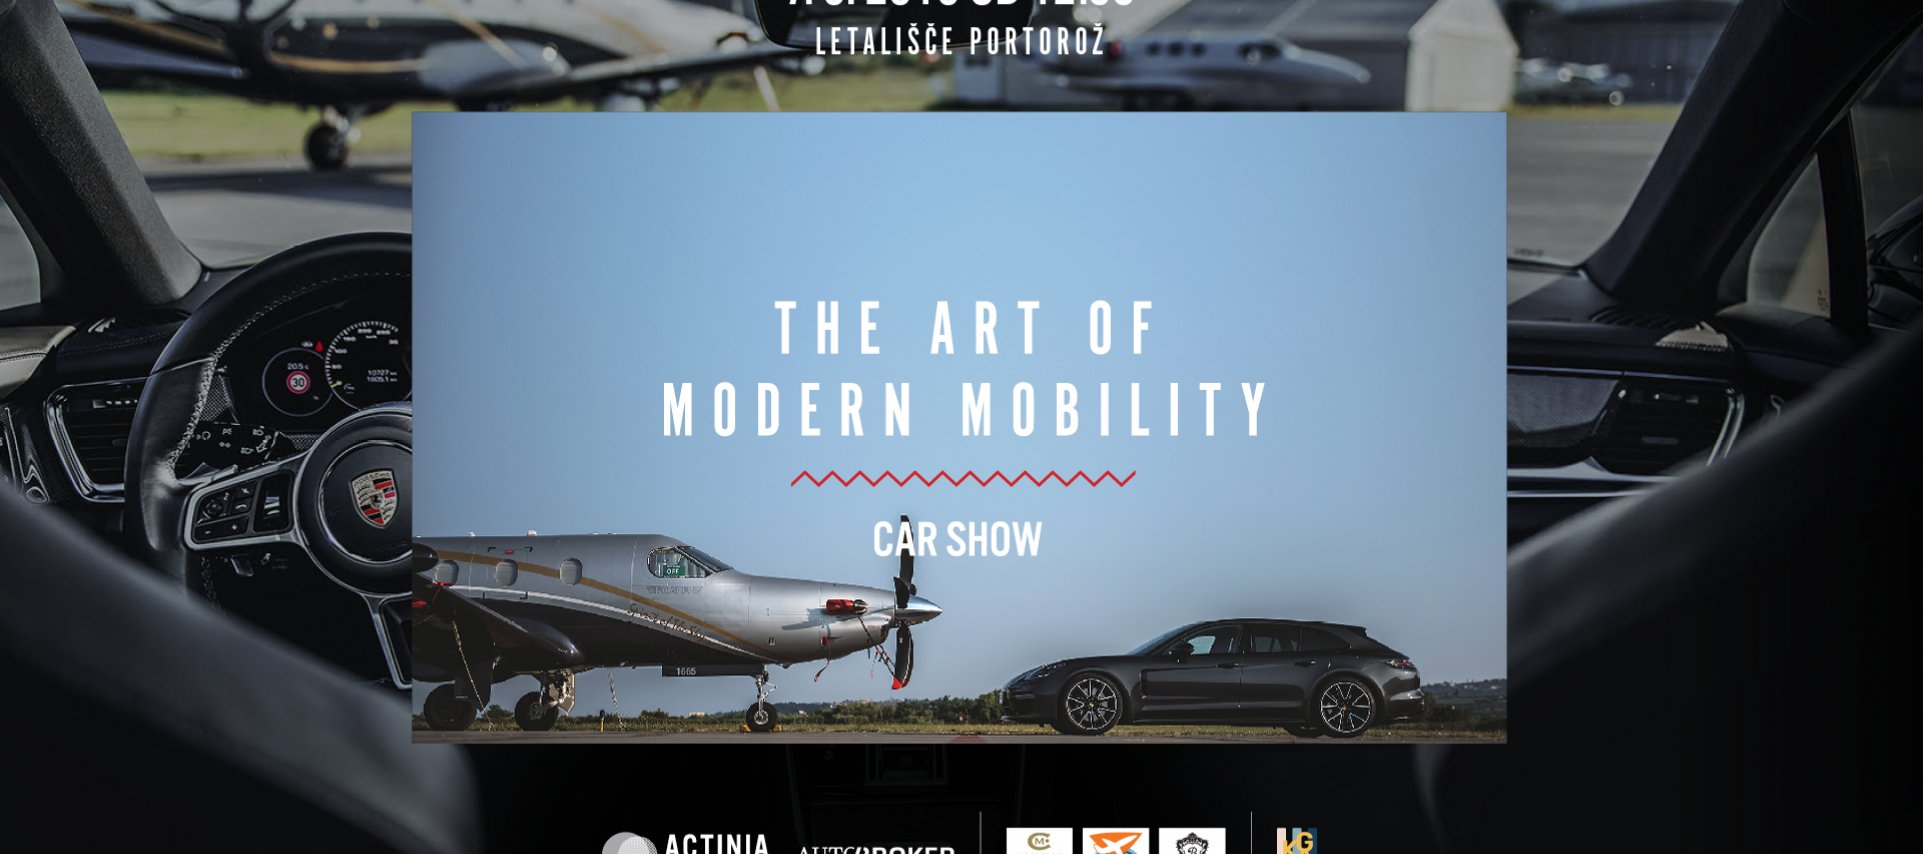 Car Show: The Art of Modern Mobility